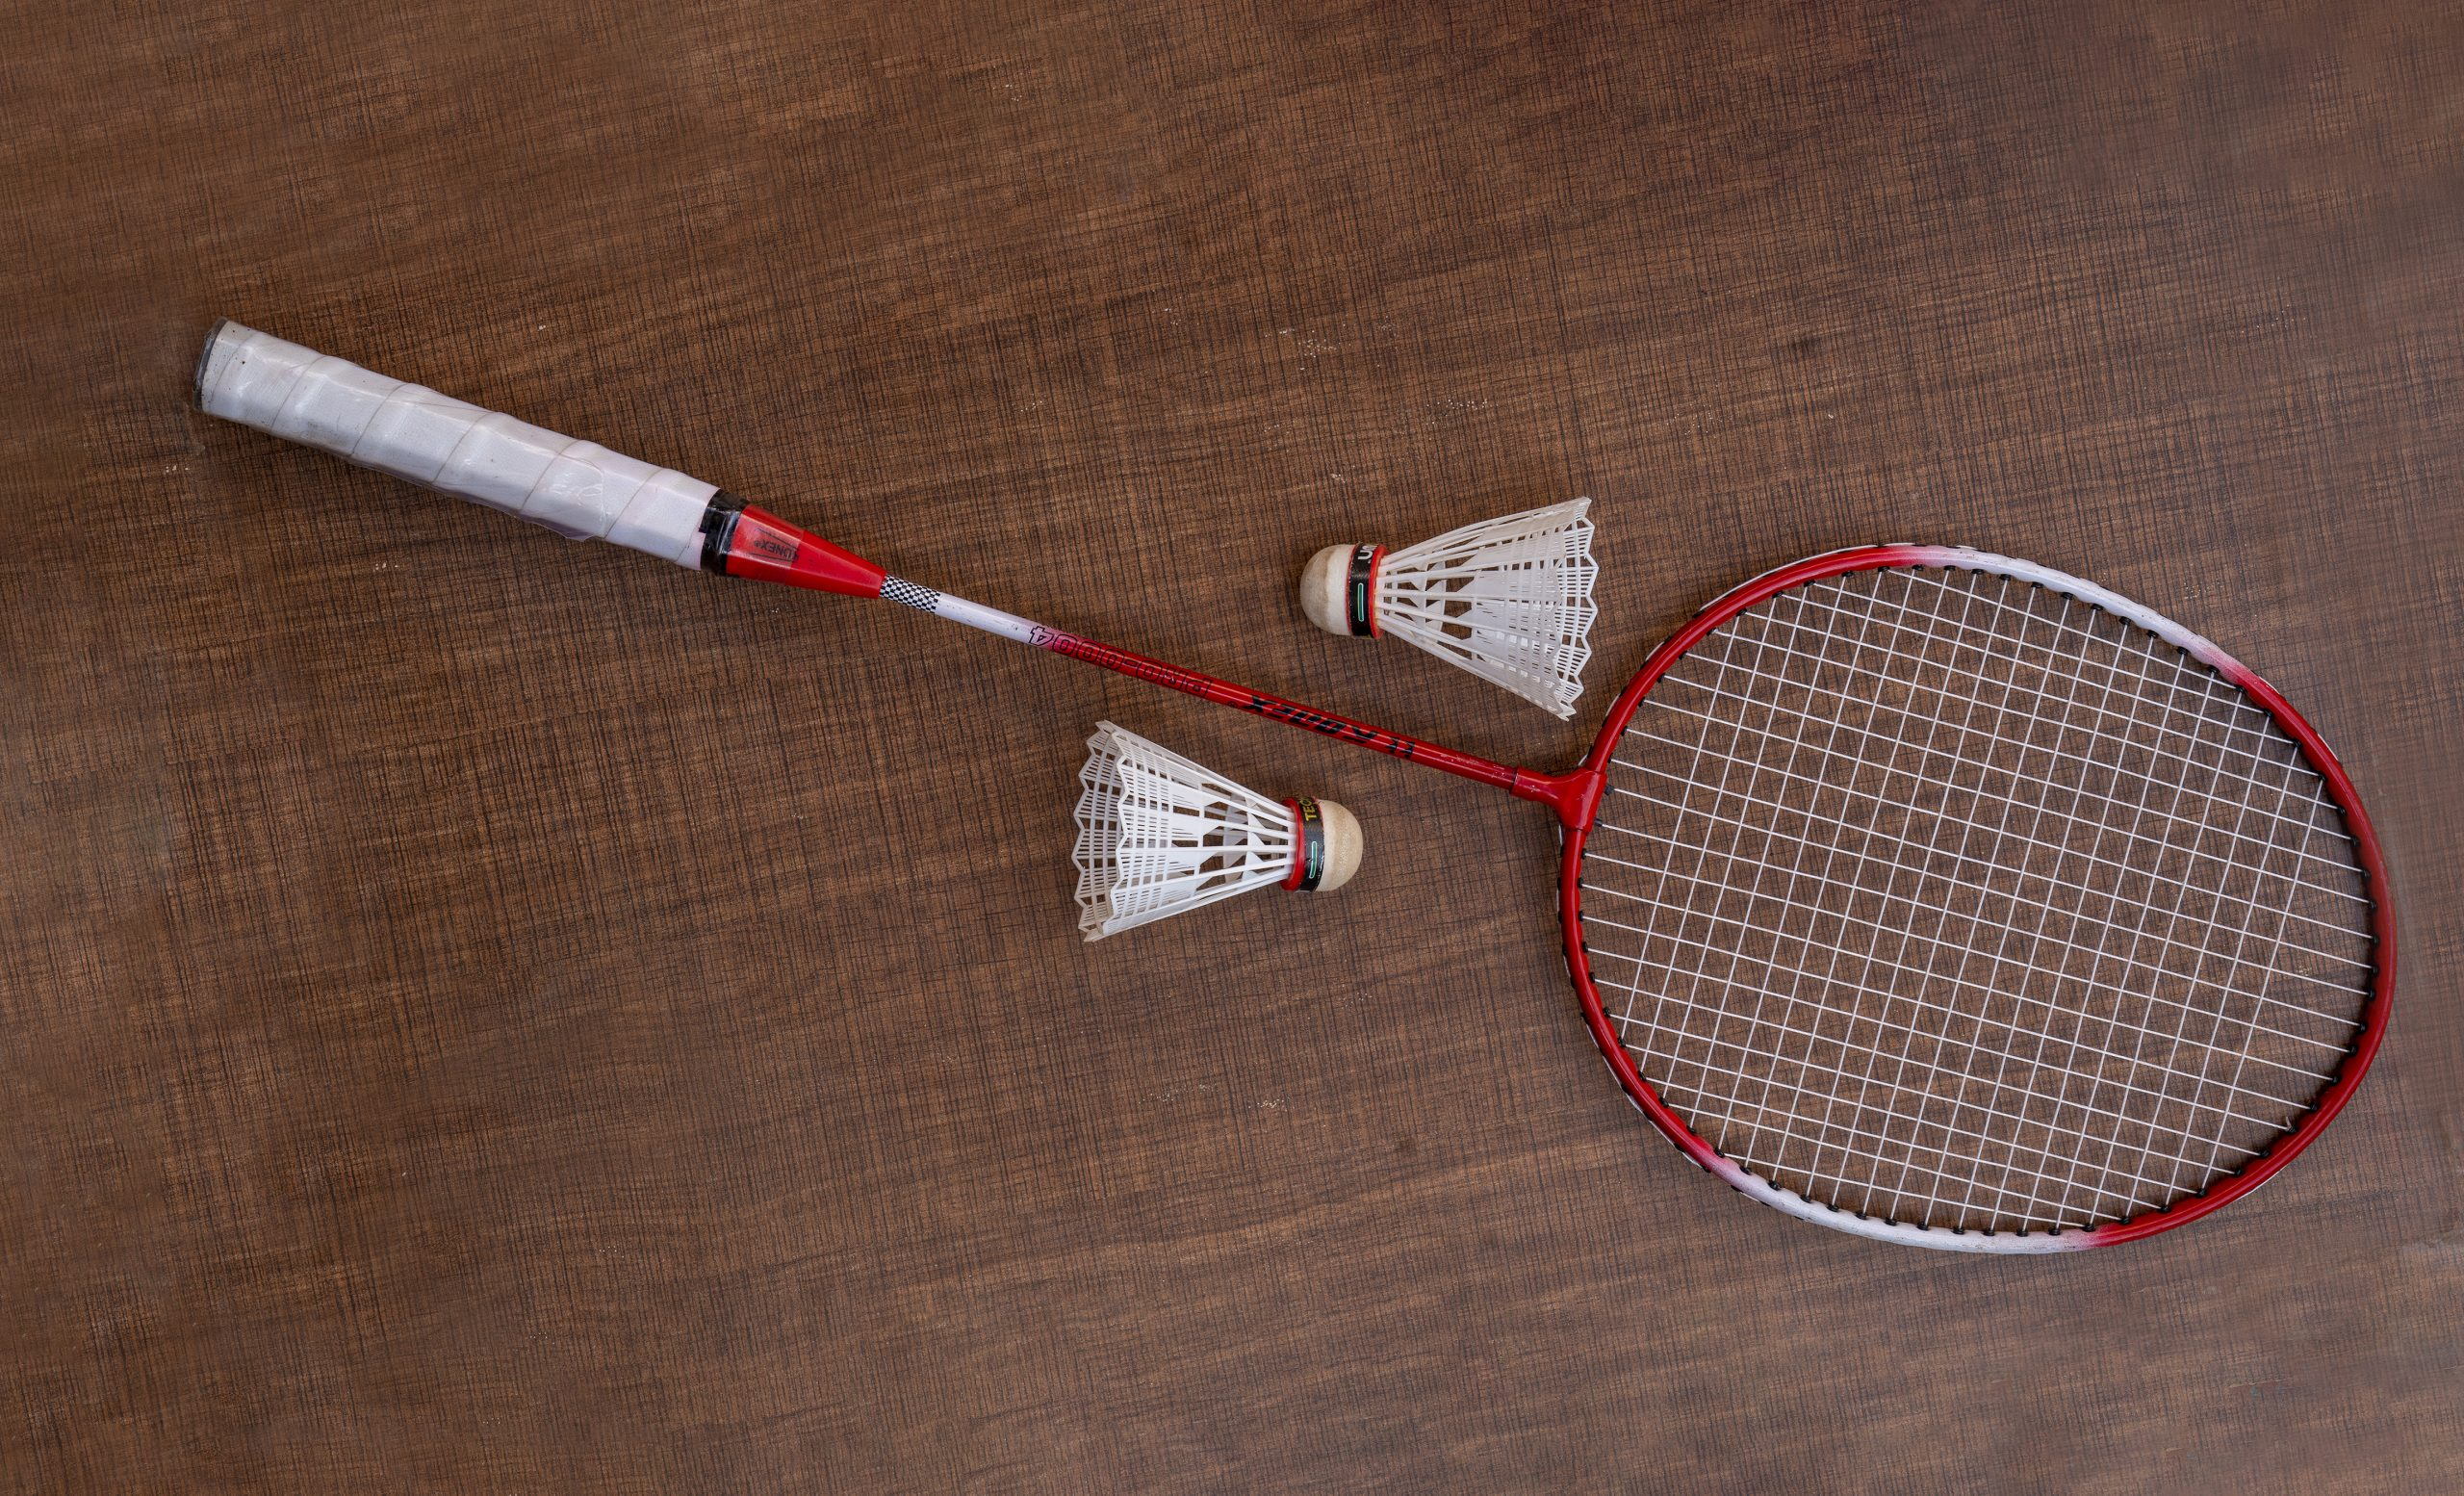 Badminton racket and two shuttlecocks